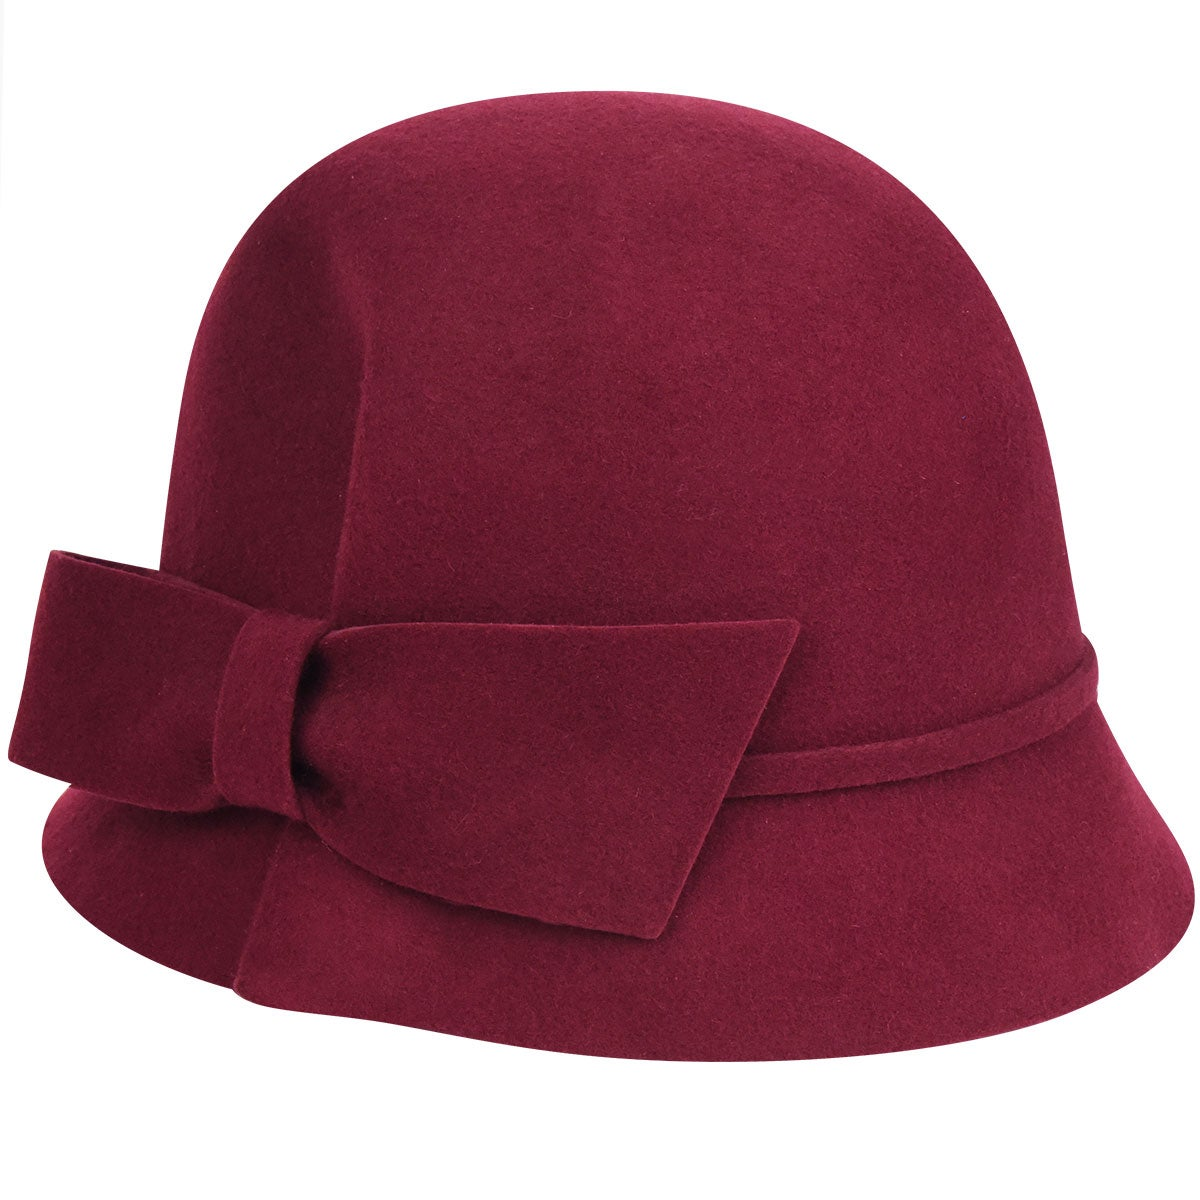 Women's Vintage Hats | Old Fashioned Hats | Retro Hats Dixie Cloche $60.00 AT vintagedancer.com